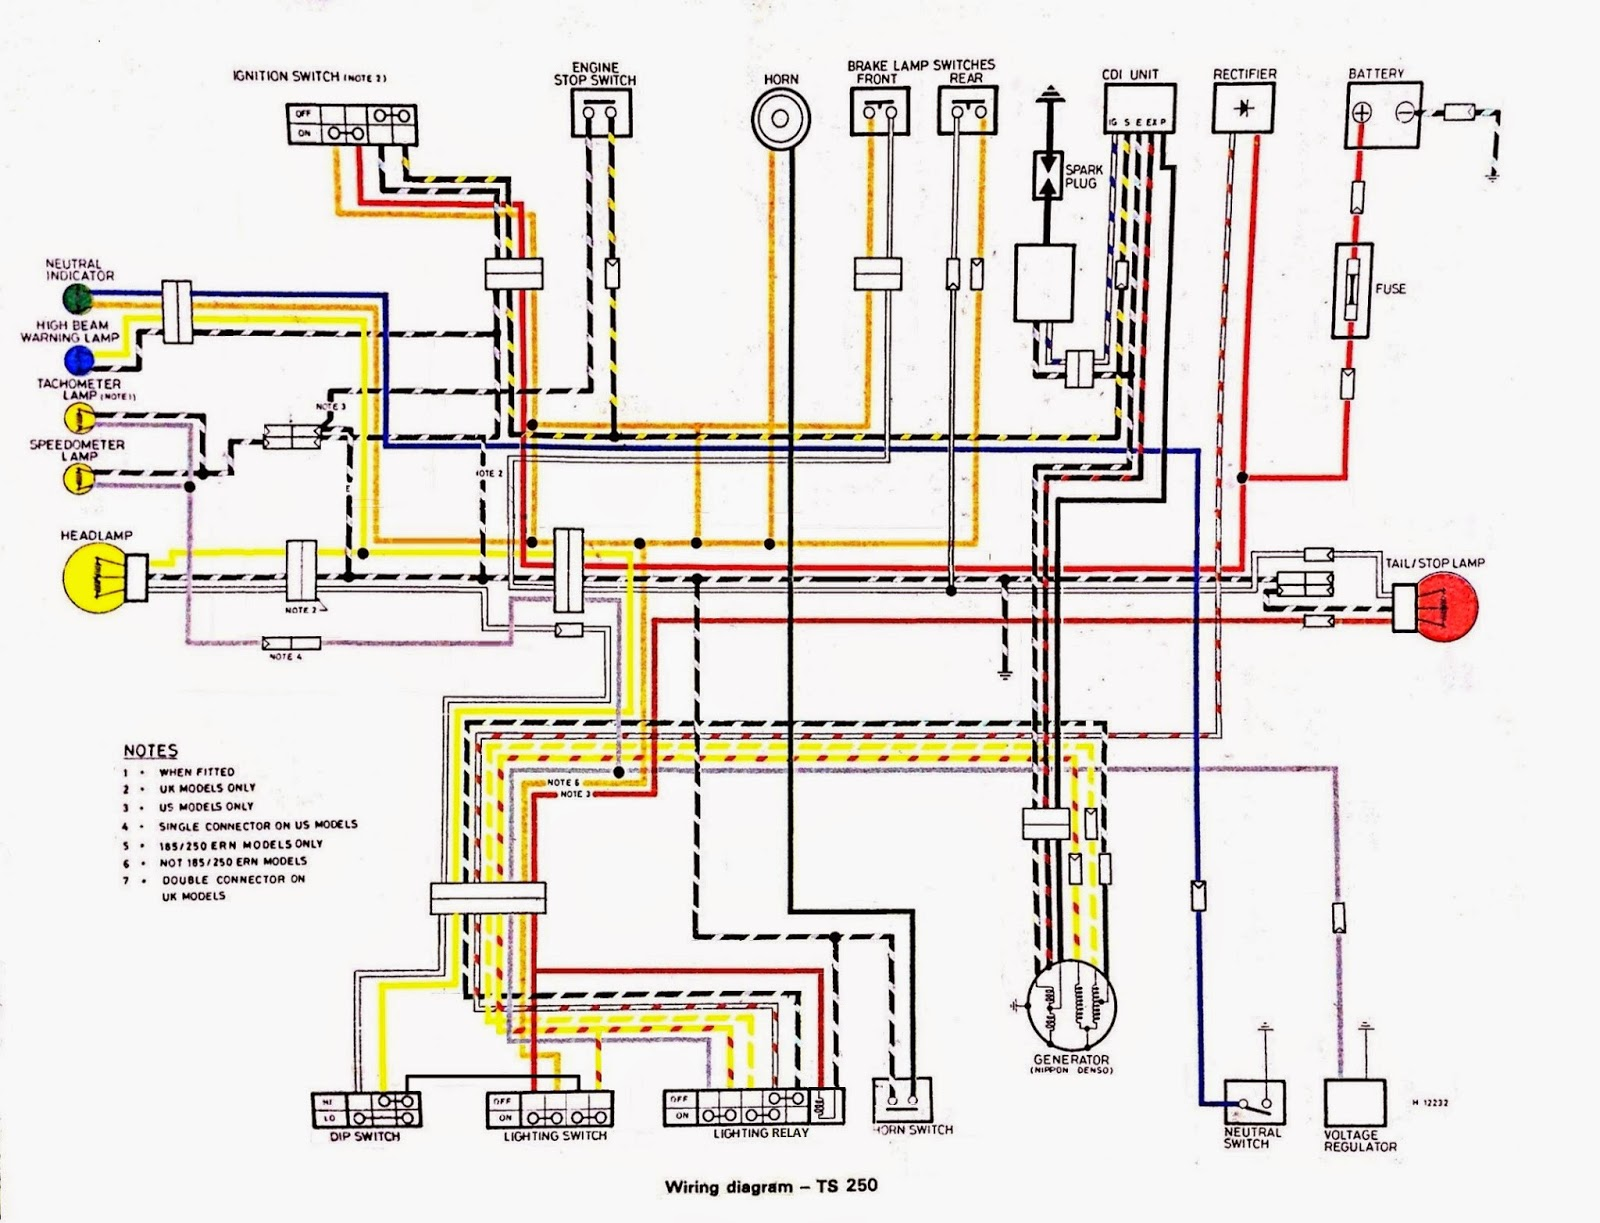 Regulator Rectifier Wiring Diagram Suzuki Dr650 Mack Dm690s Fuse Box 2001 Ts250 Rebuild Part 4 Rewiring Rh Blogspot Com Gsxr 750 Ktm Diagrams